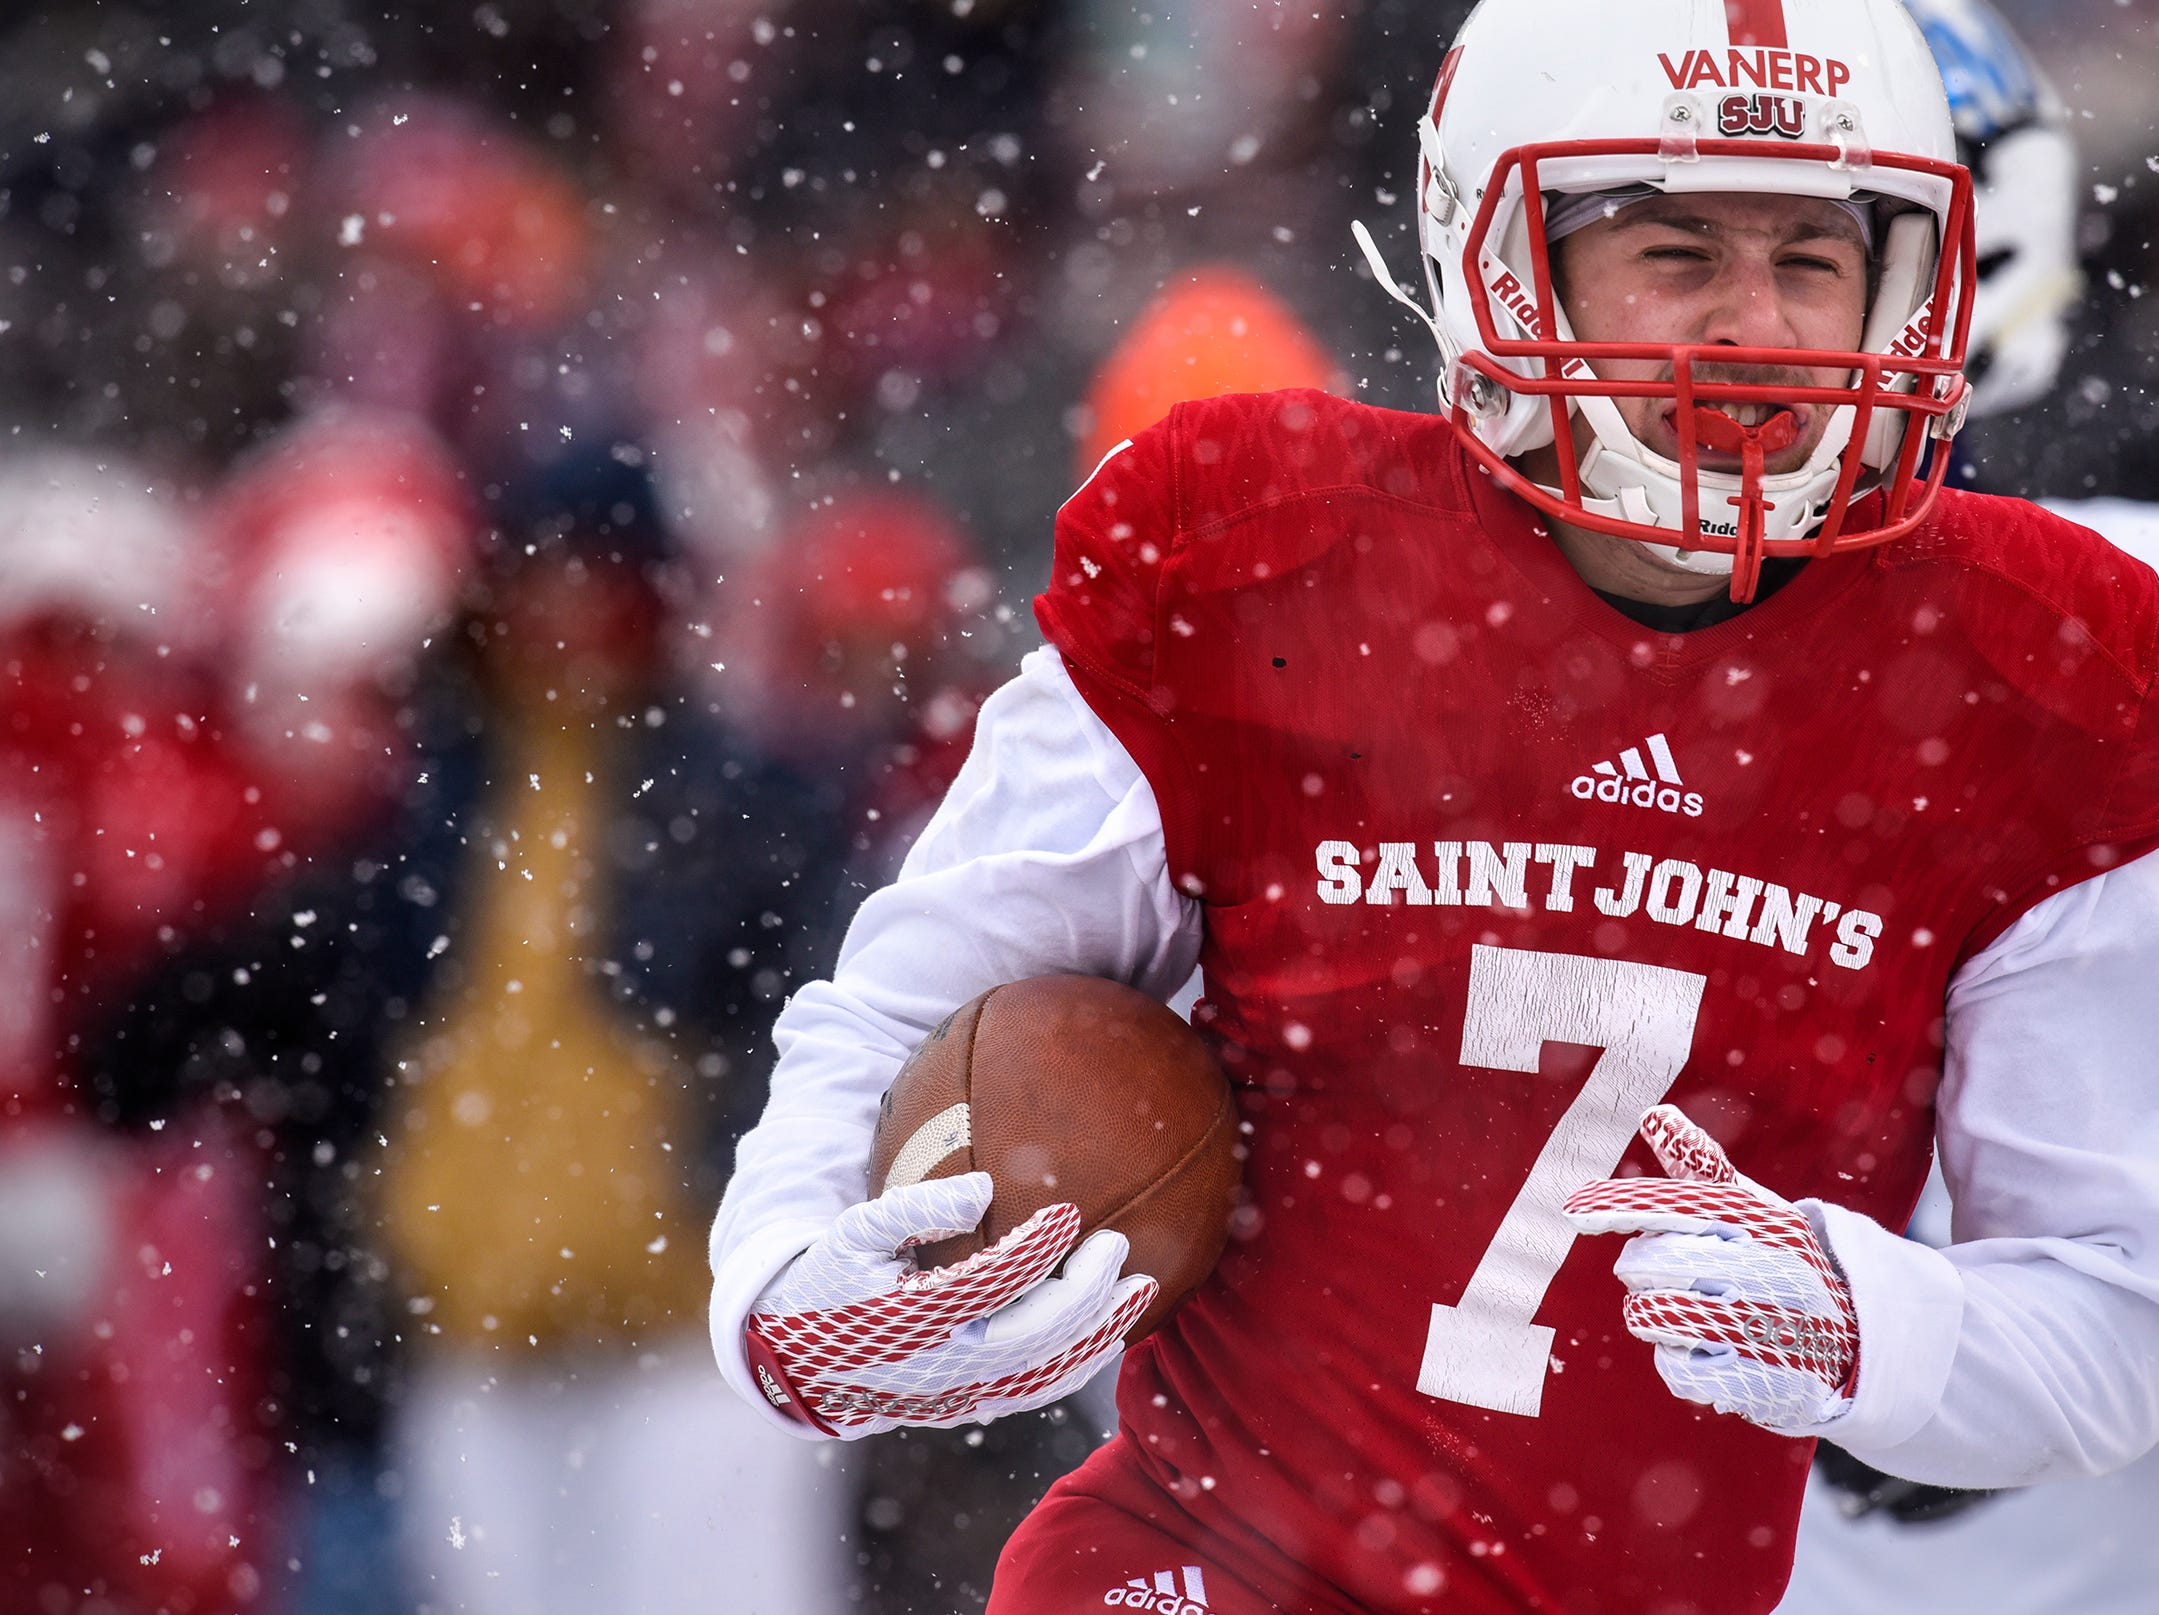 Andrew VanErp scores a touchdown for St. John's during the first half of the Saturday, Nov. 10, game against Thomas More University at Clemens Stadium in Collegeville.